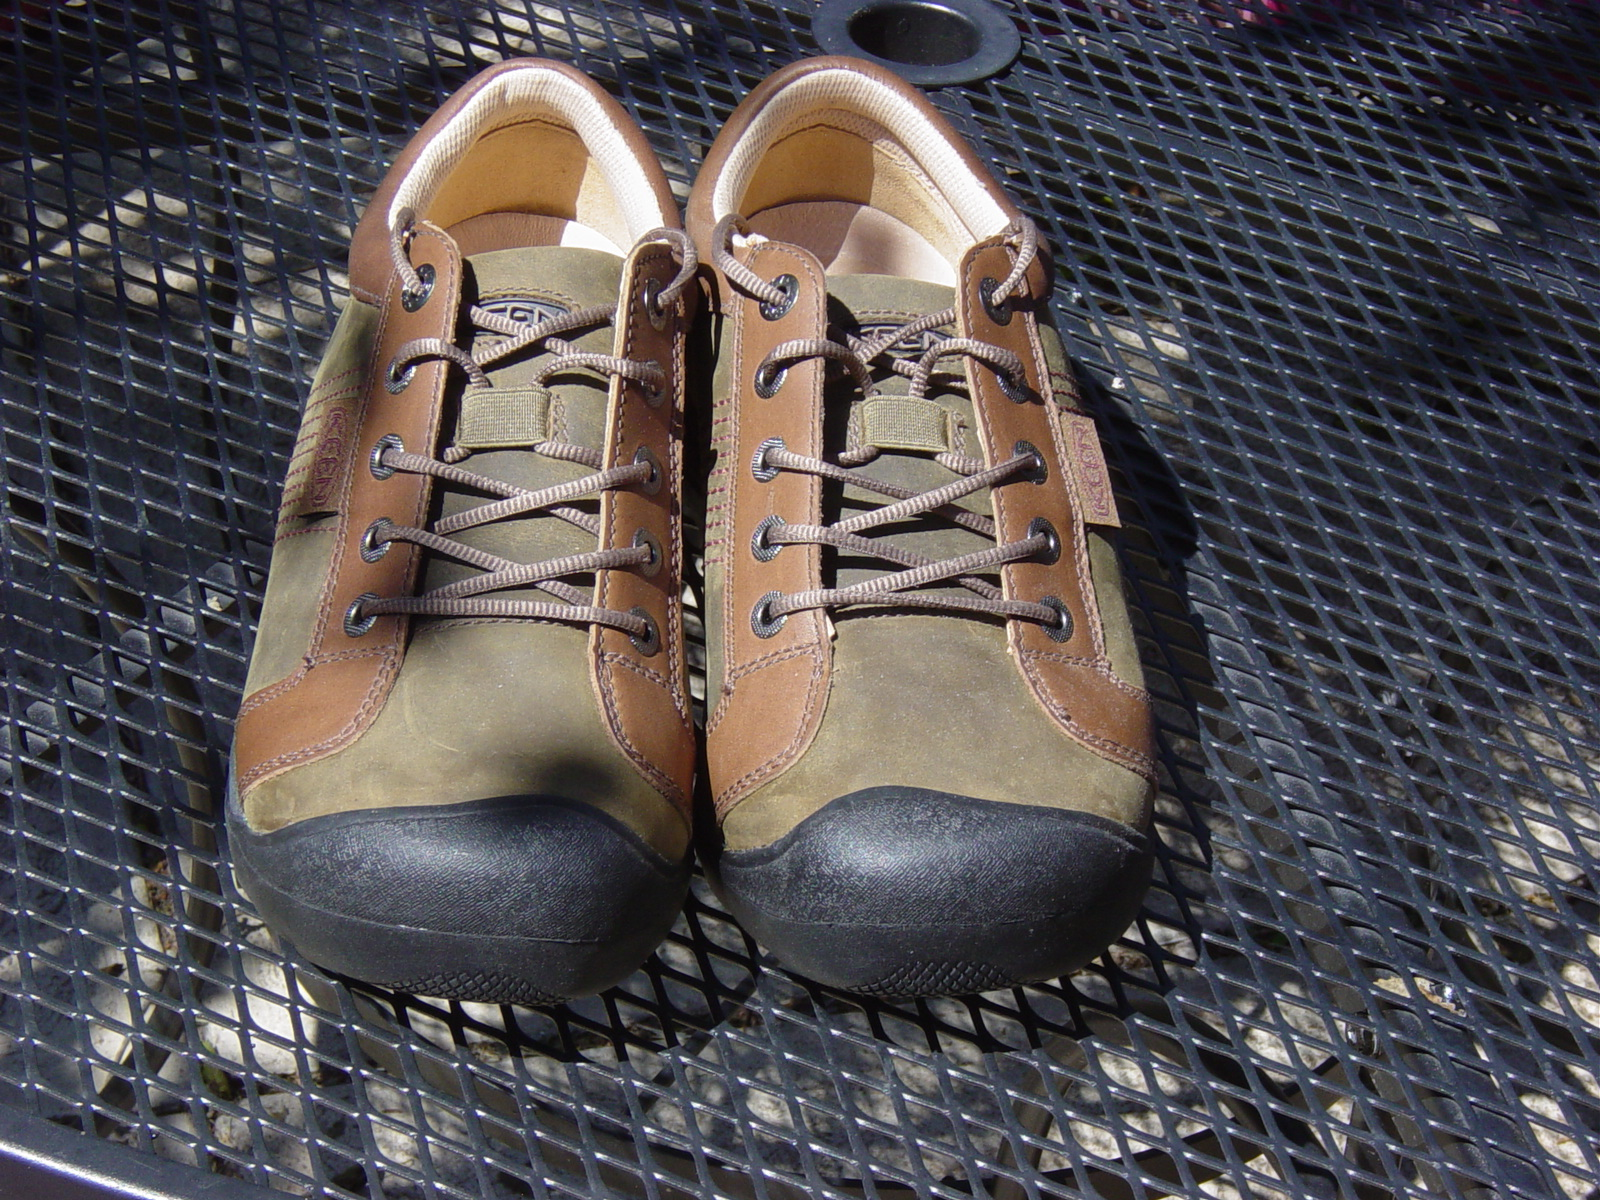 48d7564df6 The practical guide to casual and stylish looking clipless shoes